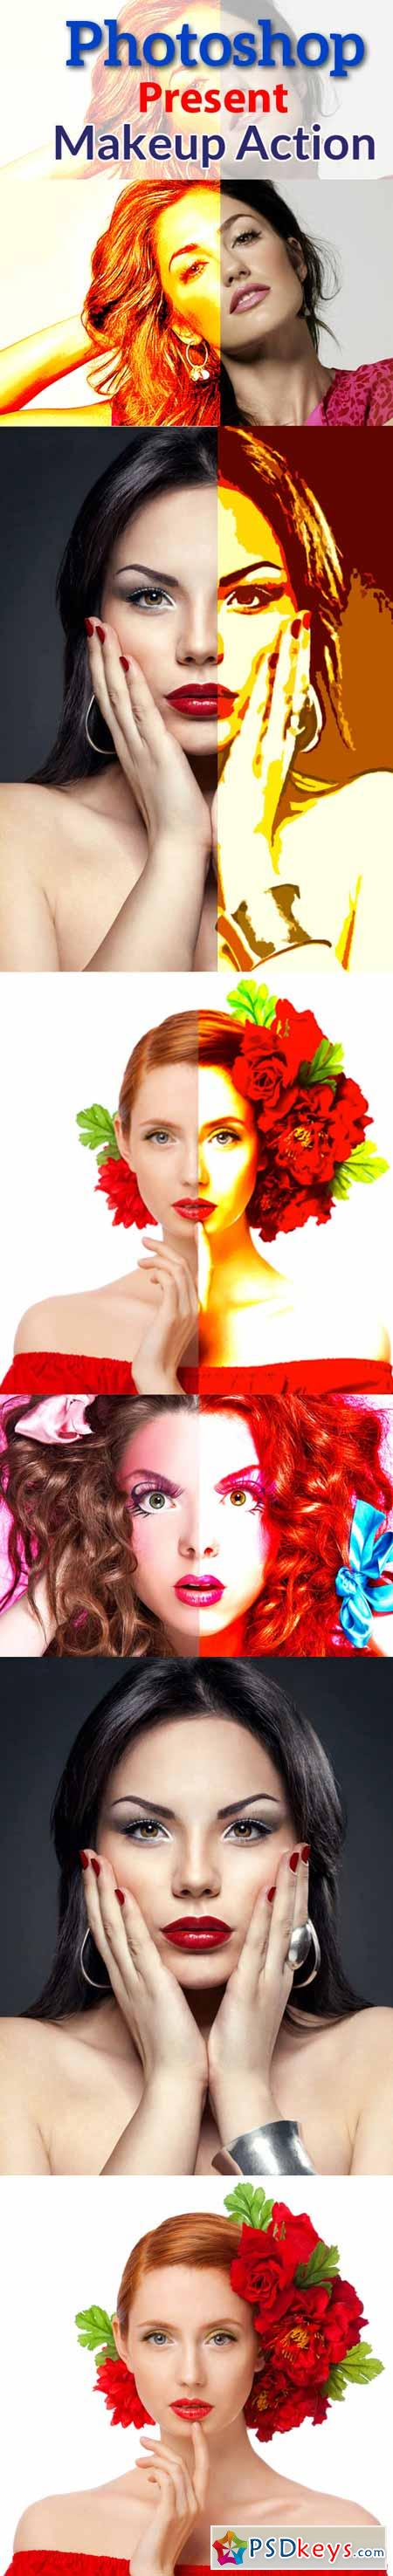 Photoshop Present Makeup Action 5372